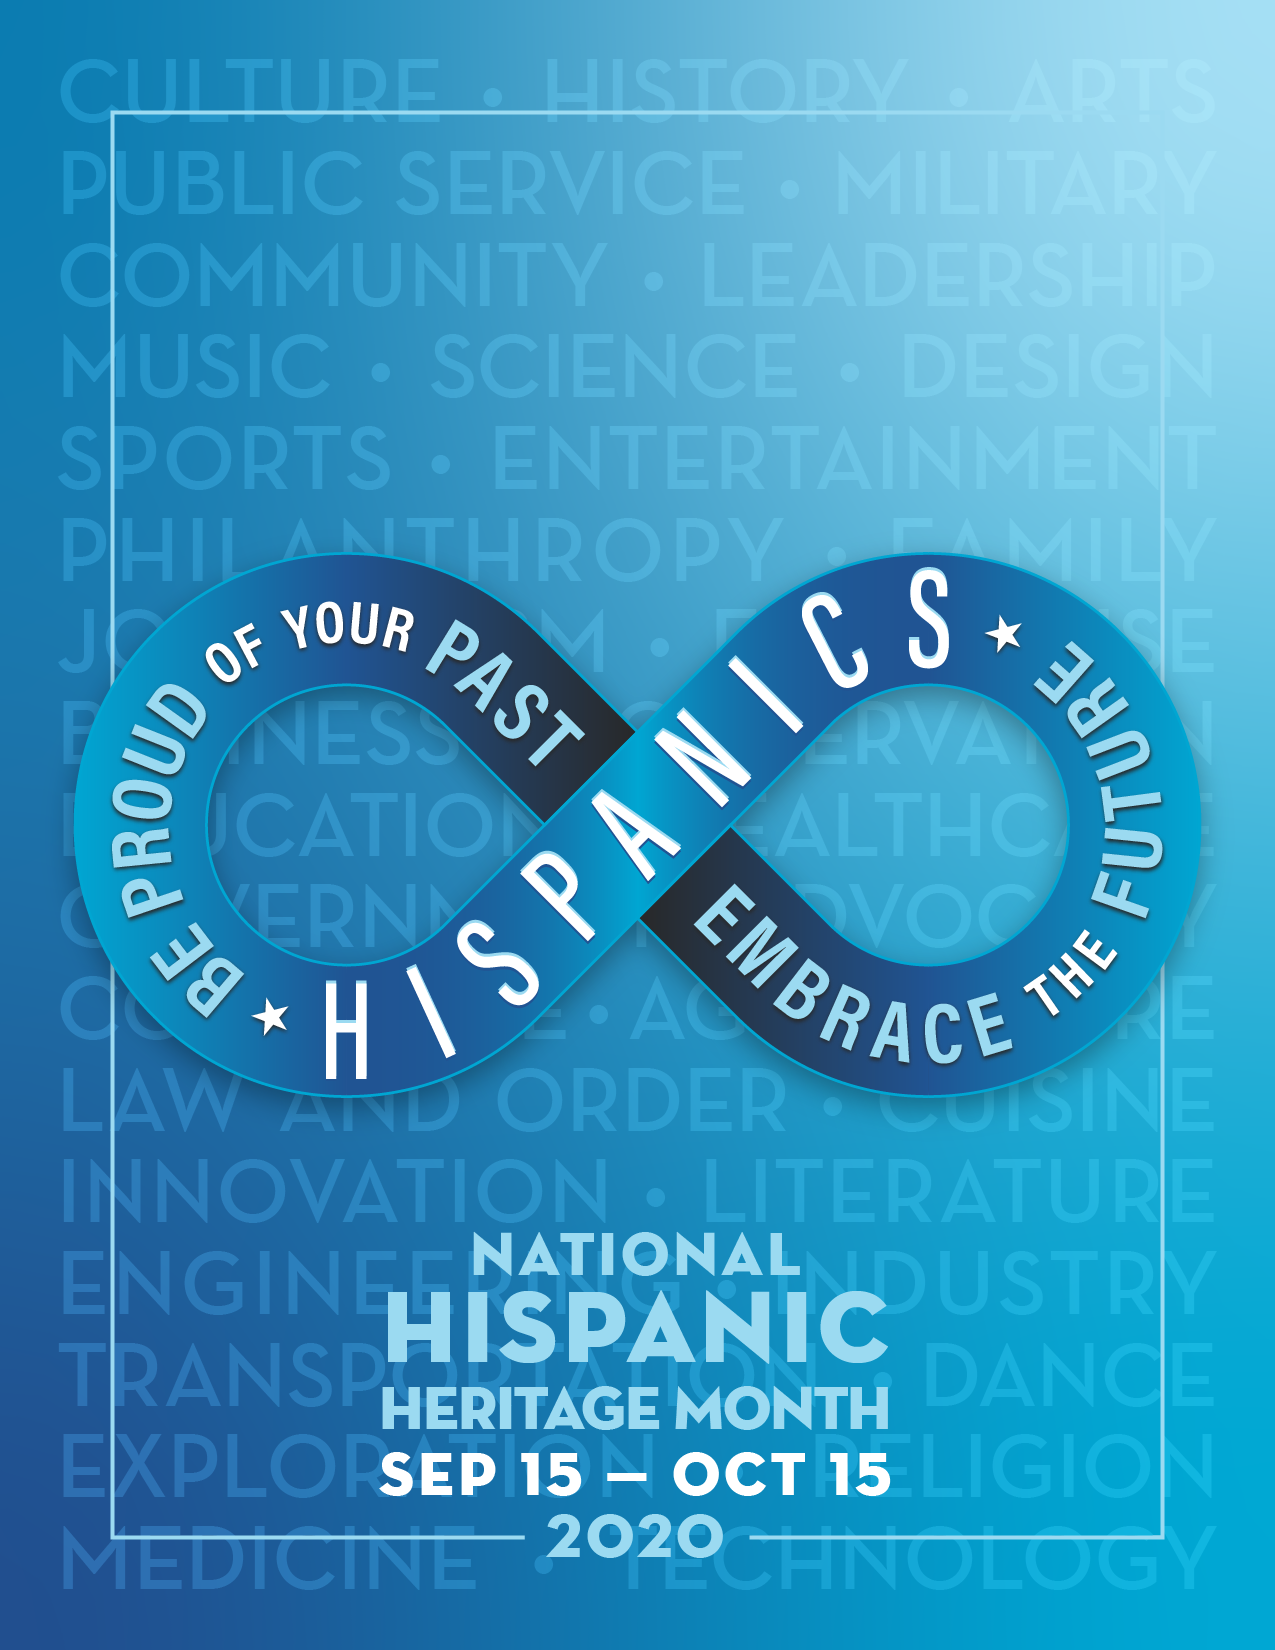 National Hispanic Heritage Month September 15th-October 15th Blue poster with dates